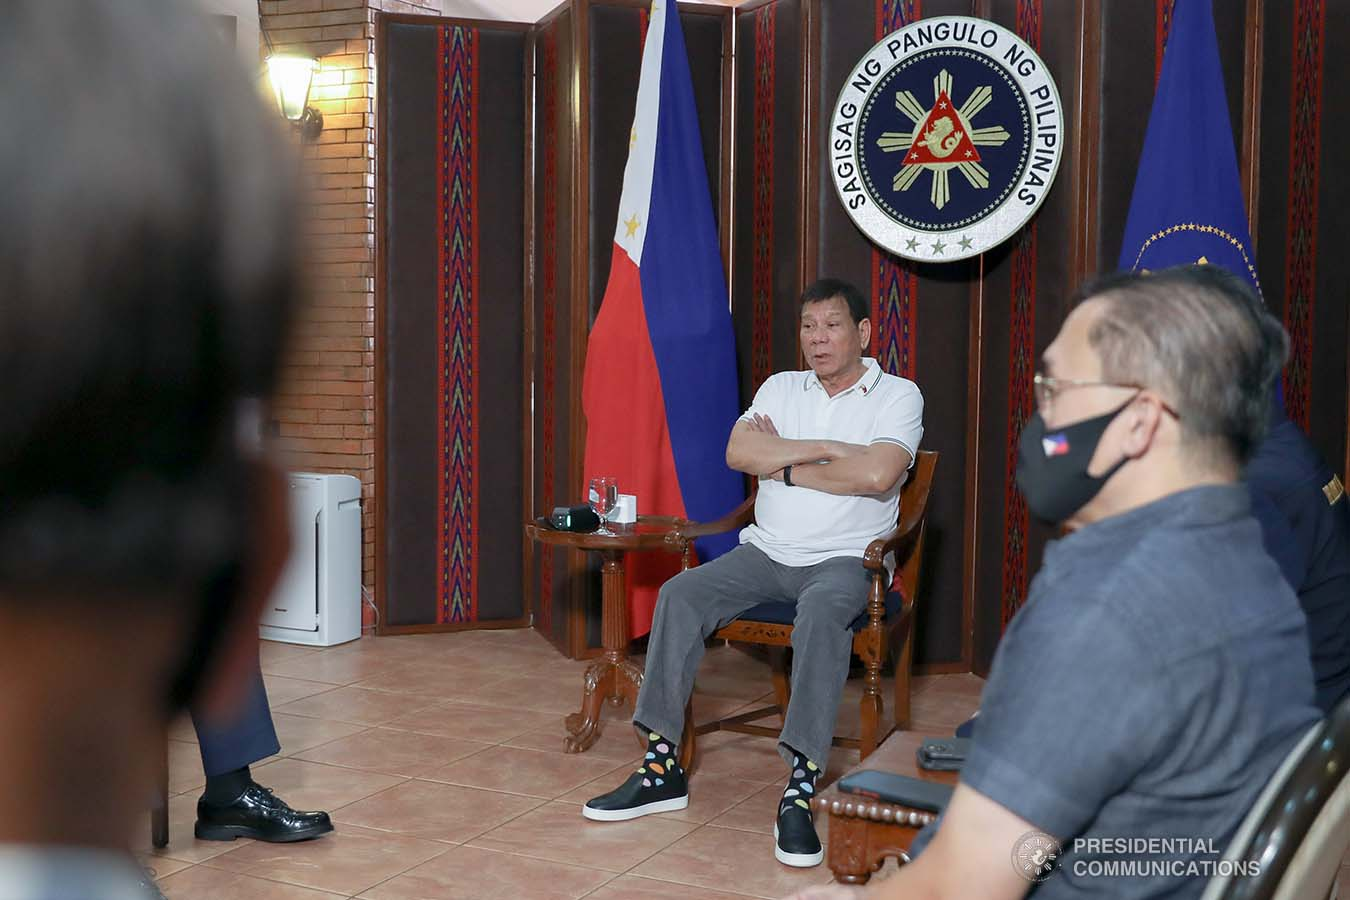 President Rodrigo Roa Duterte meets with Philippine National Police Chief Debold Menorias Sinas and Philippine Drug Enforcement Agency (PDEA) Director General Wilkins Villanueva as he orders both of them to discontinue their ongoing investigation after directing an order to the National Bureau of Investigation (NBI) to conduct a probe on the recent shootout in Commonwealth Avenue, Quezon City. The President aims to ensure impartiality on the said incident. With them during the meeting at the Malacañang Golf (Malago) Clubhouse in Malacañang Park, Manila on February 26, 2021 are Senator Christopher Lawrence Go, Justice Secretary Menardo Guevarra, Presidential Spokesperson Herminio Harry Roque Jr., and NBI Director Antonio Pagatpat. KARL NORMAN ALONZO/ PRESIDENTIAL PHOTO